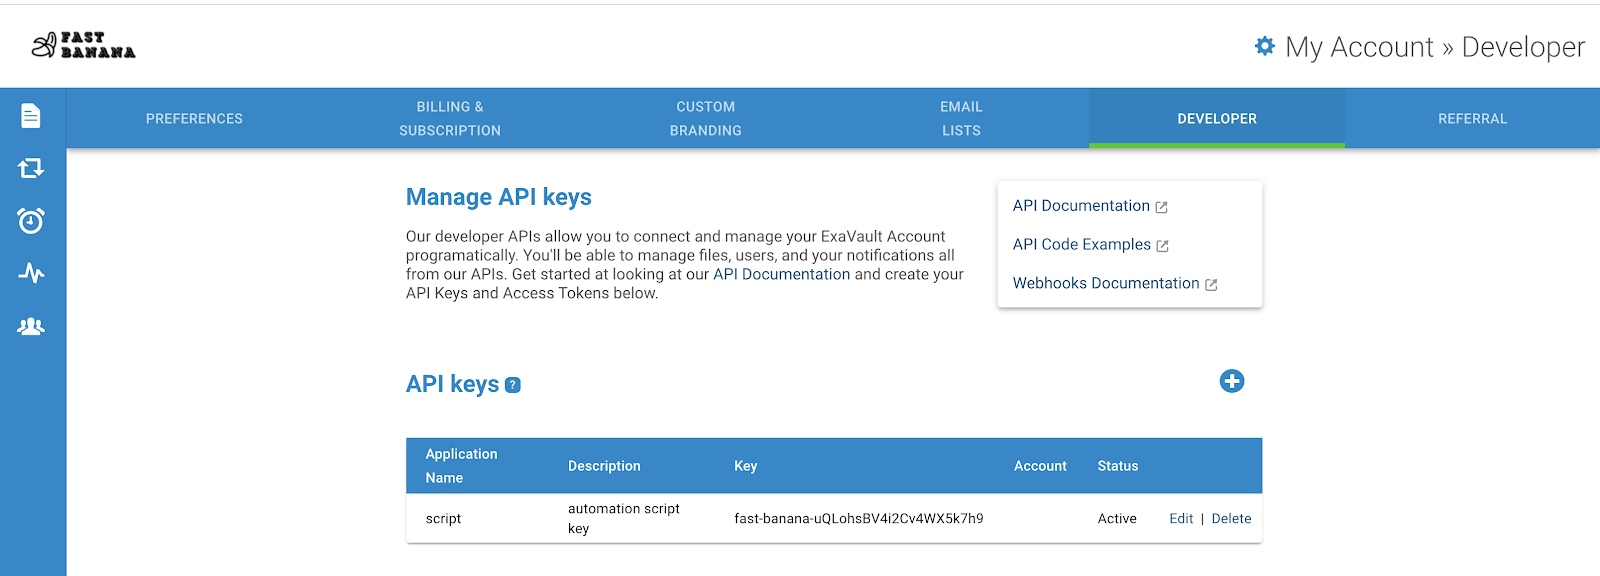 Manage v2 API keys in the ExaVault app.